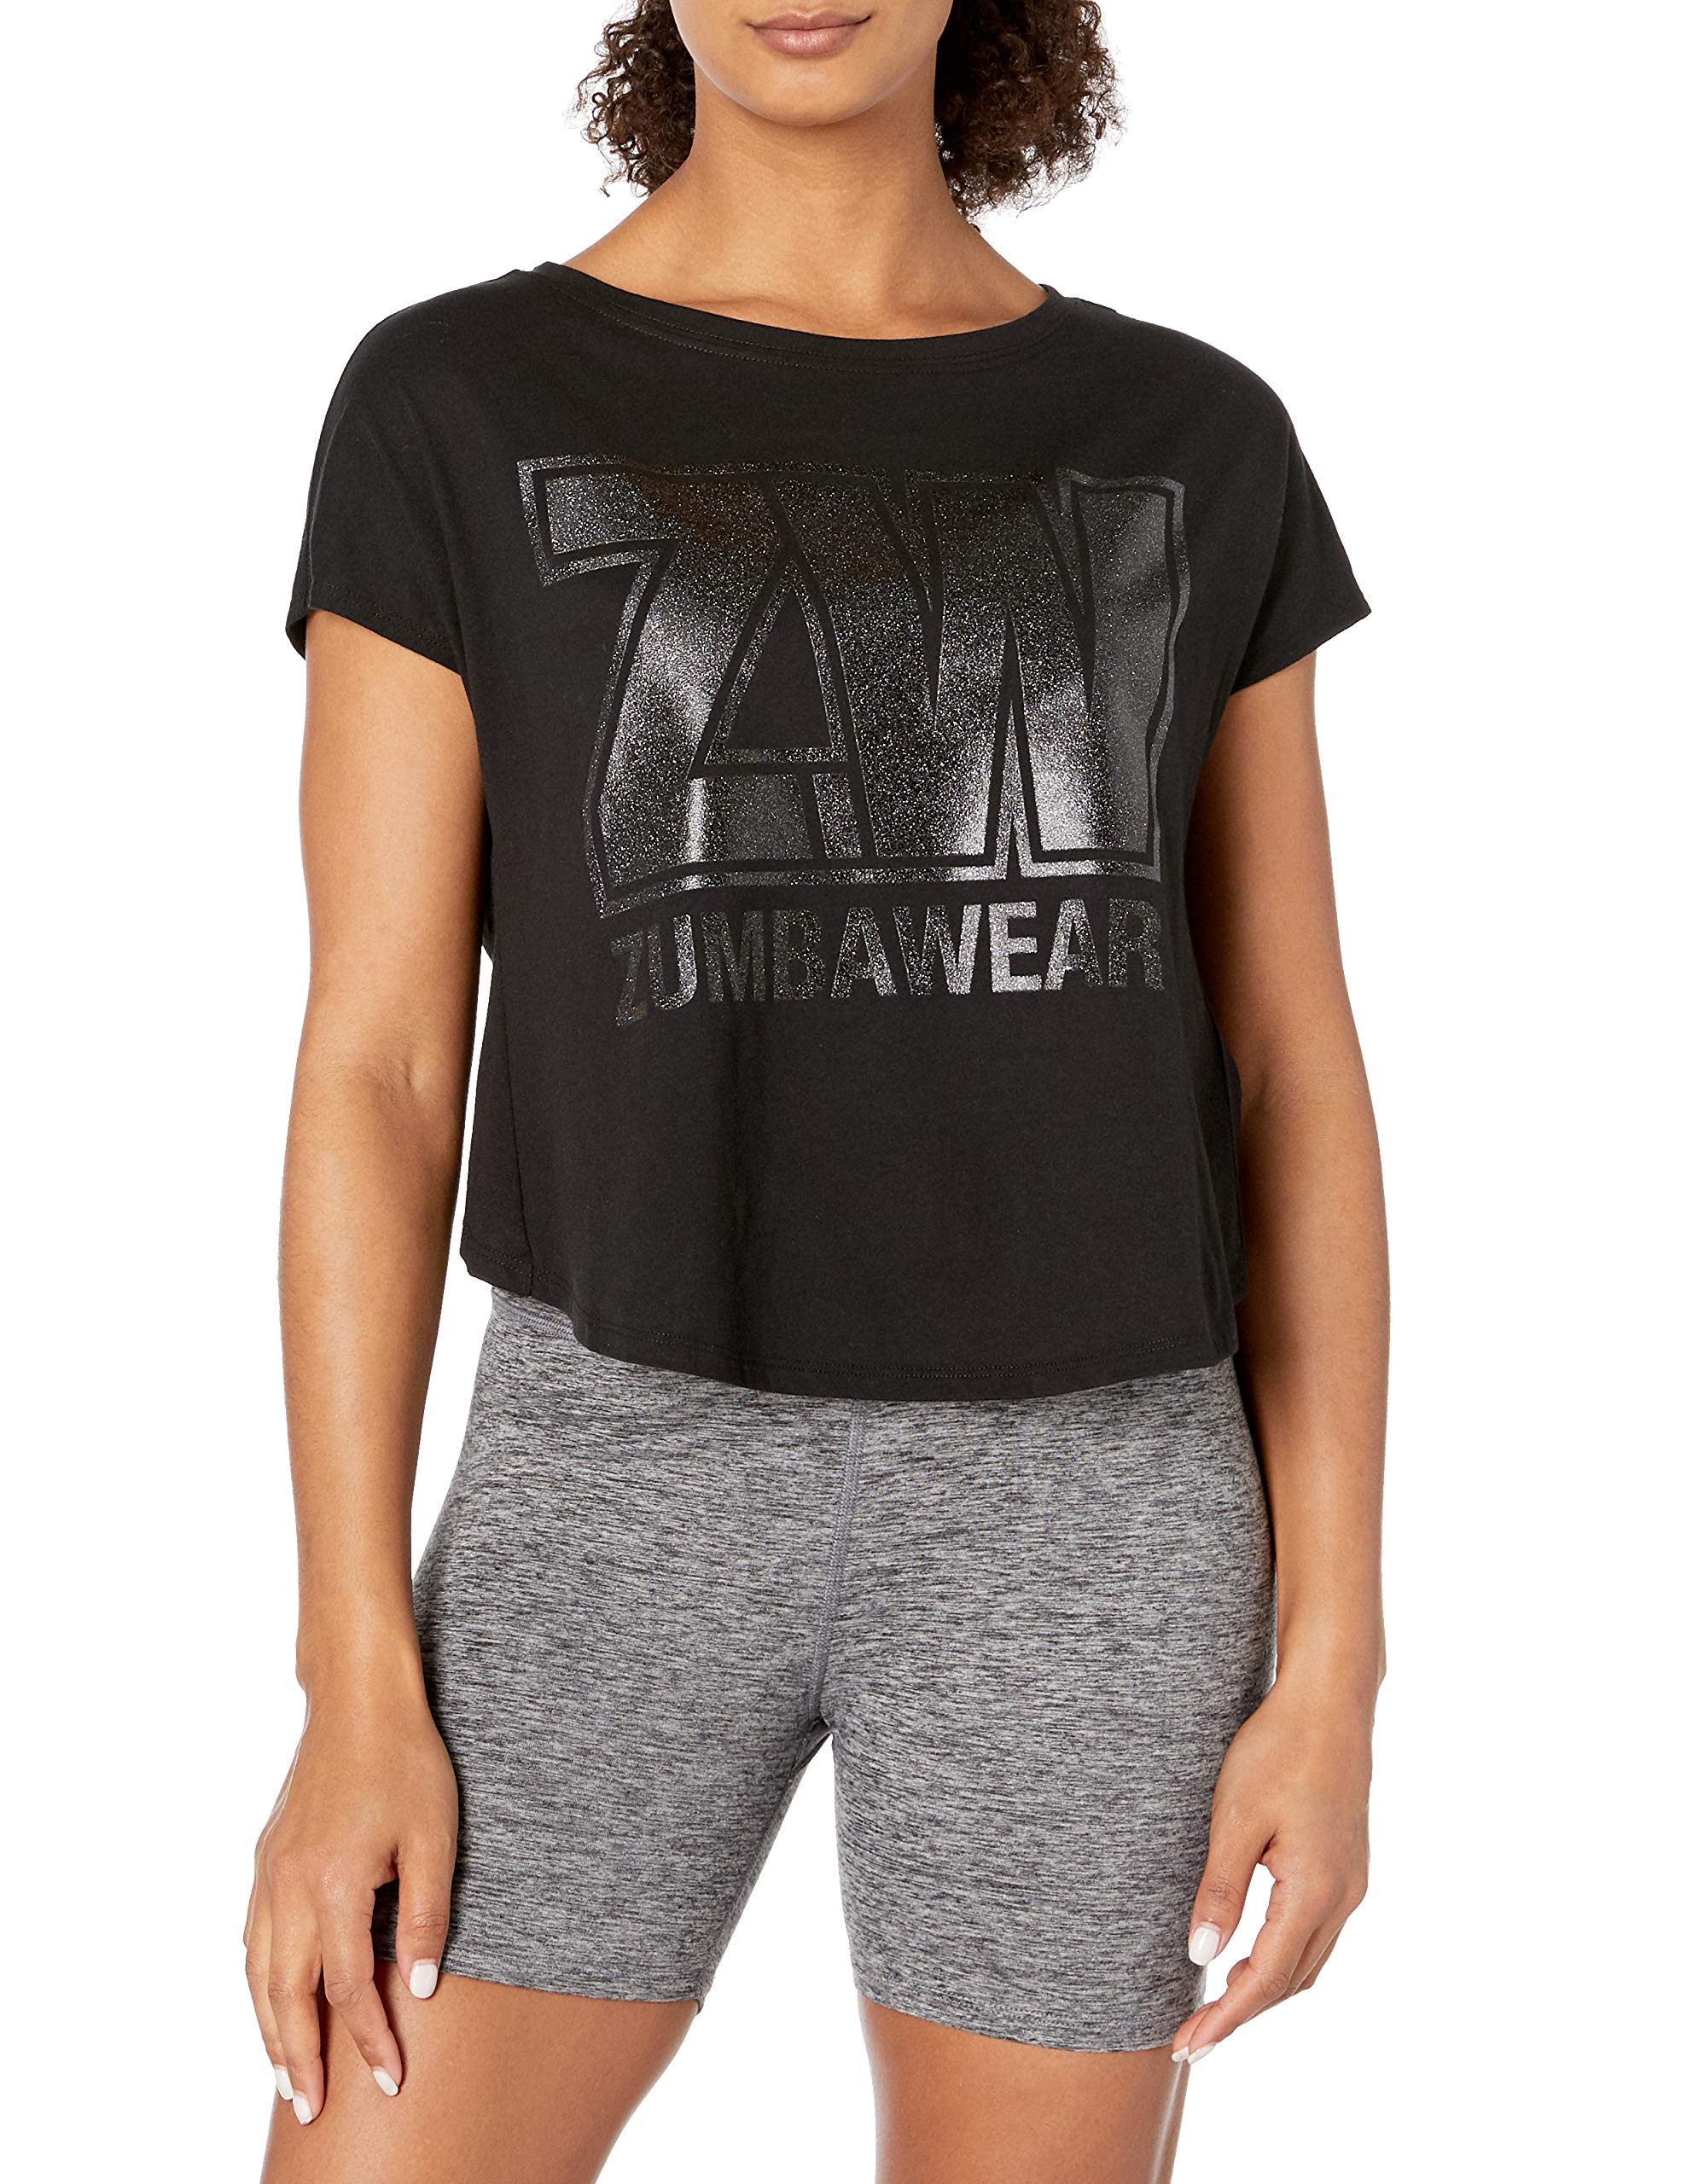 Zumba Women's Graphic Design Breathable Burnout Workout Tee Short Sleeve